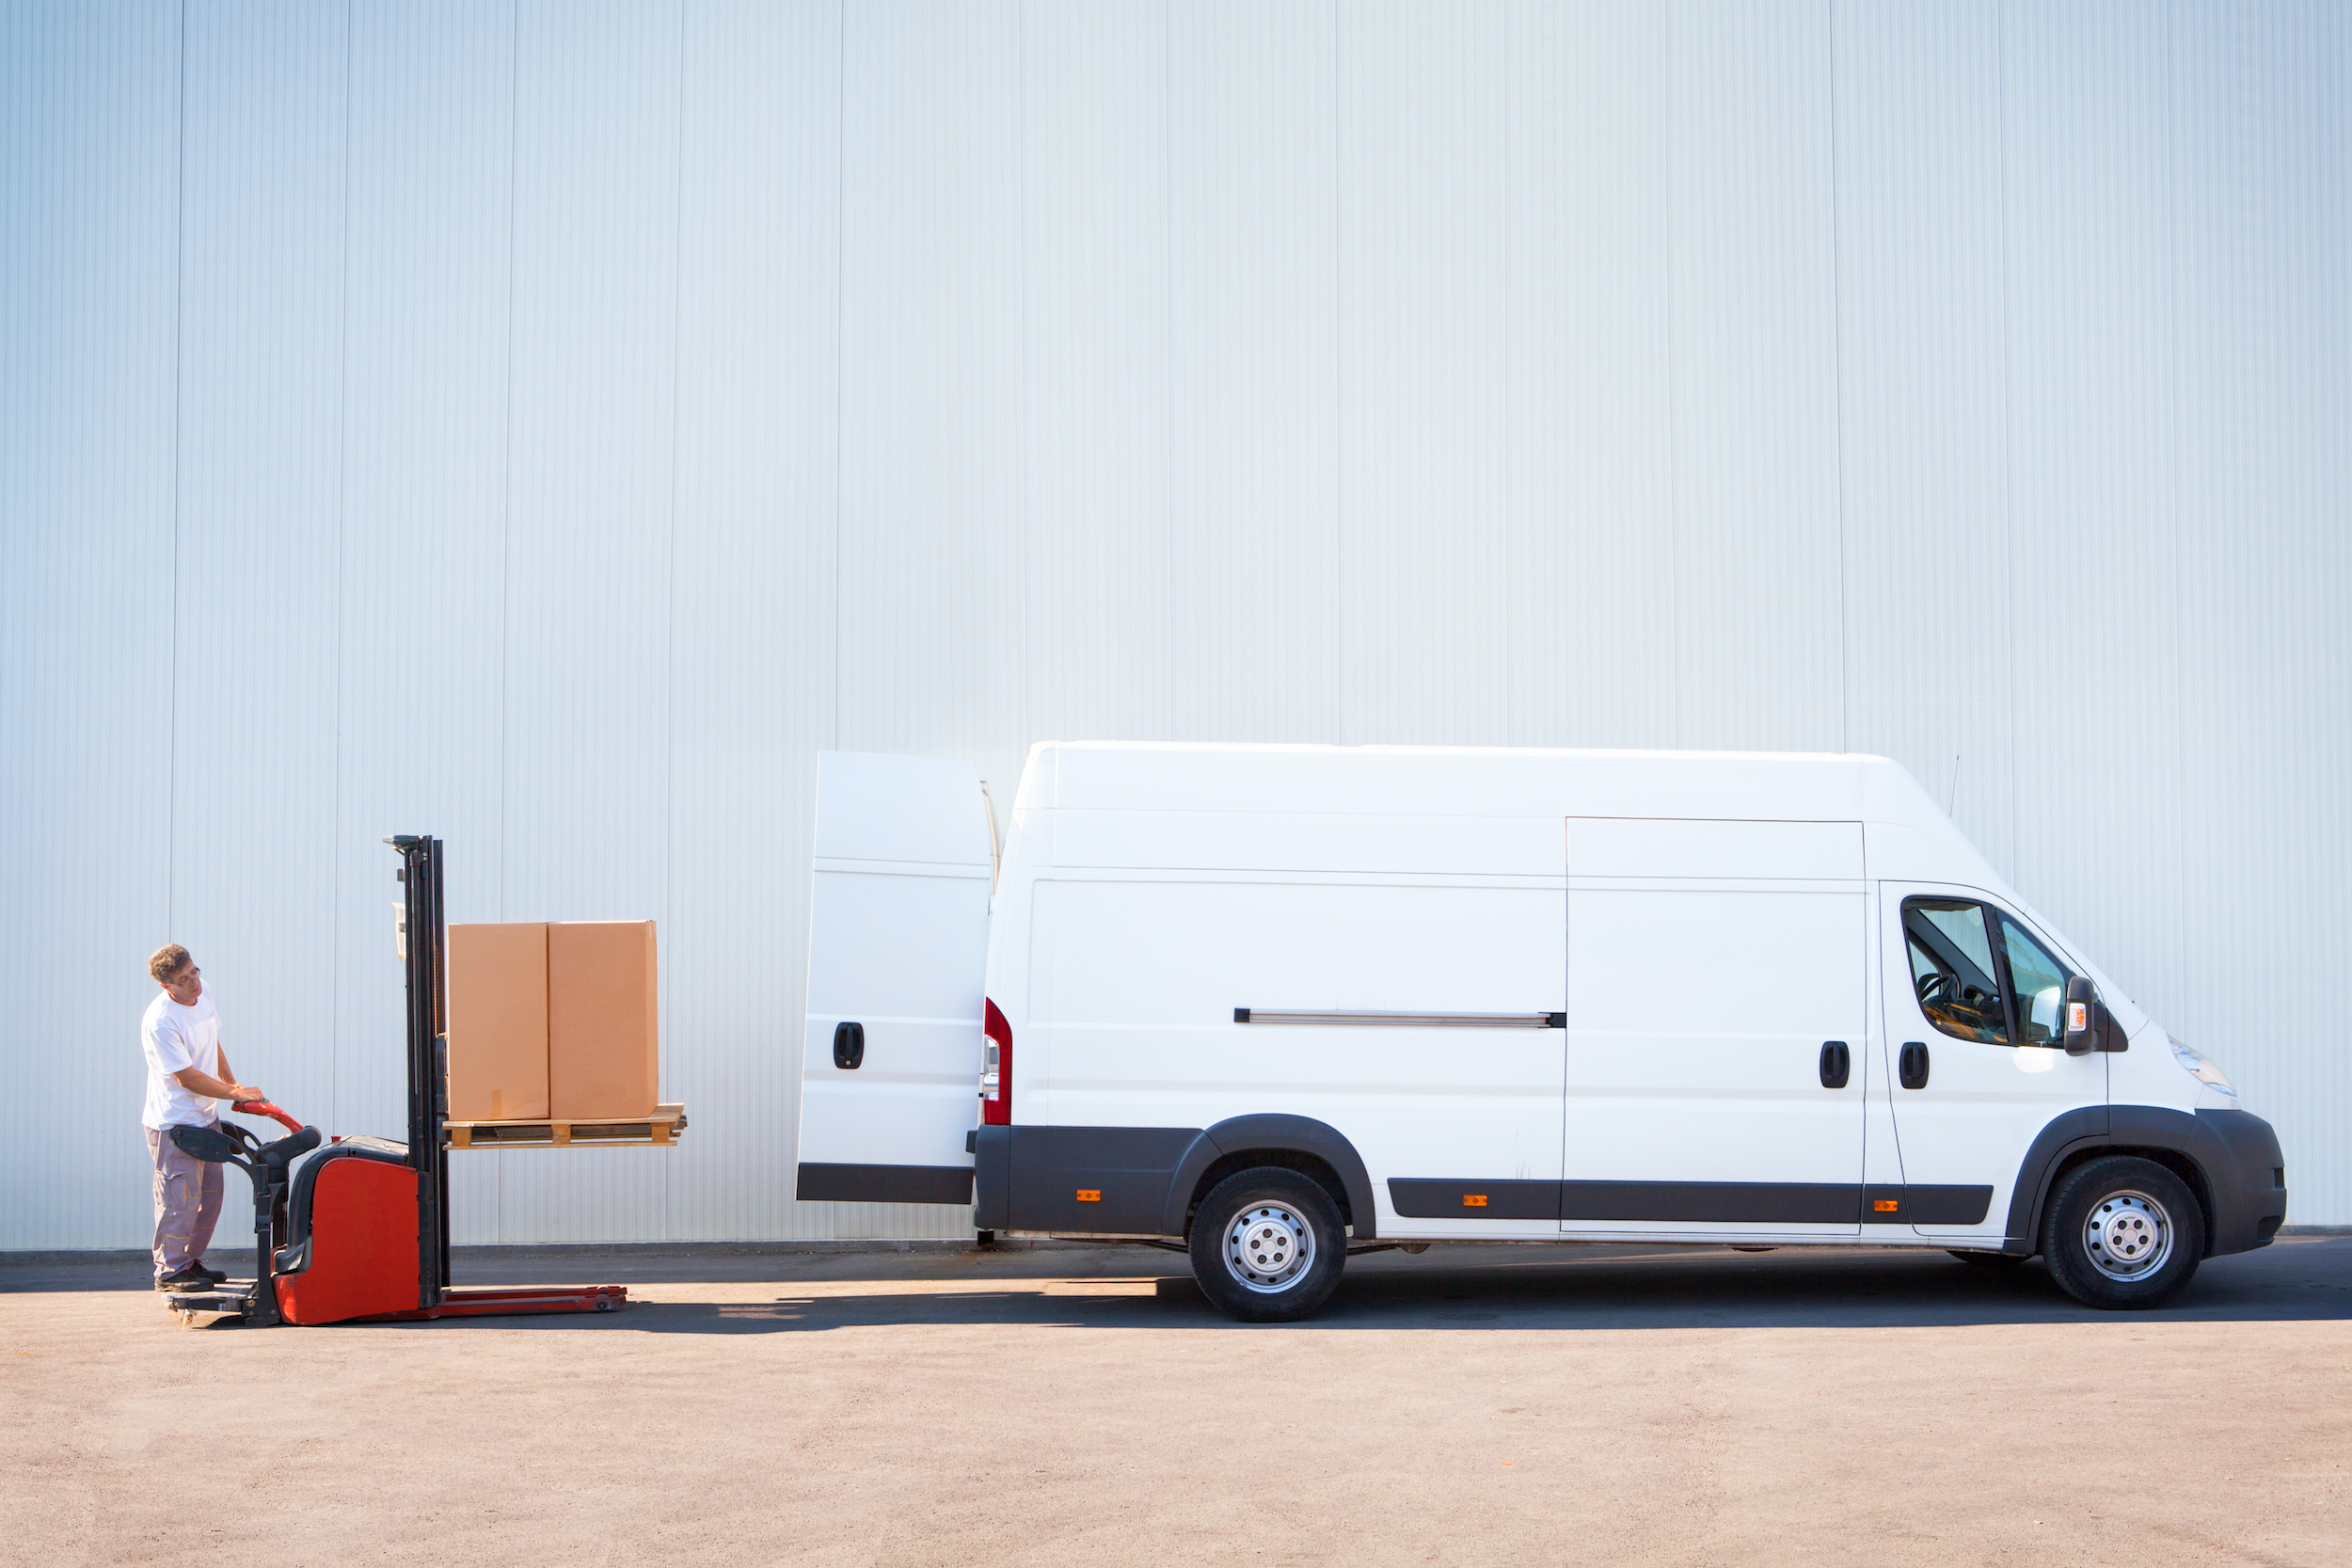 Courier is loading the van with parcels